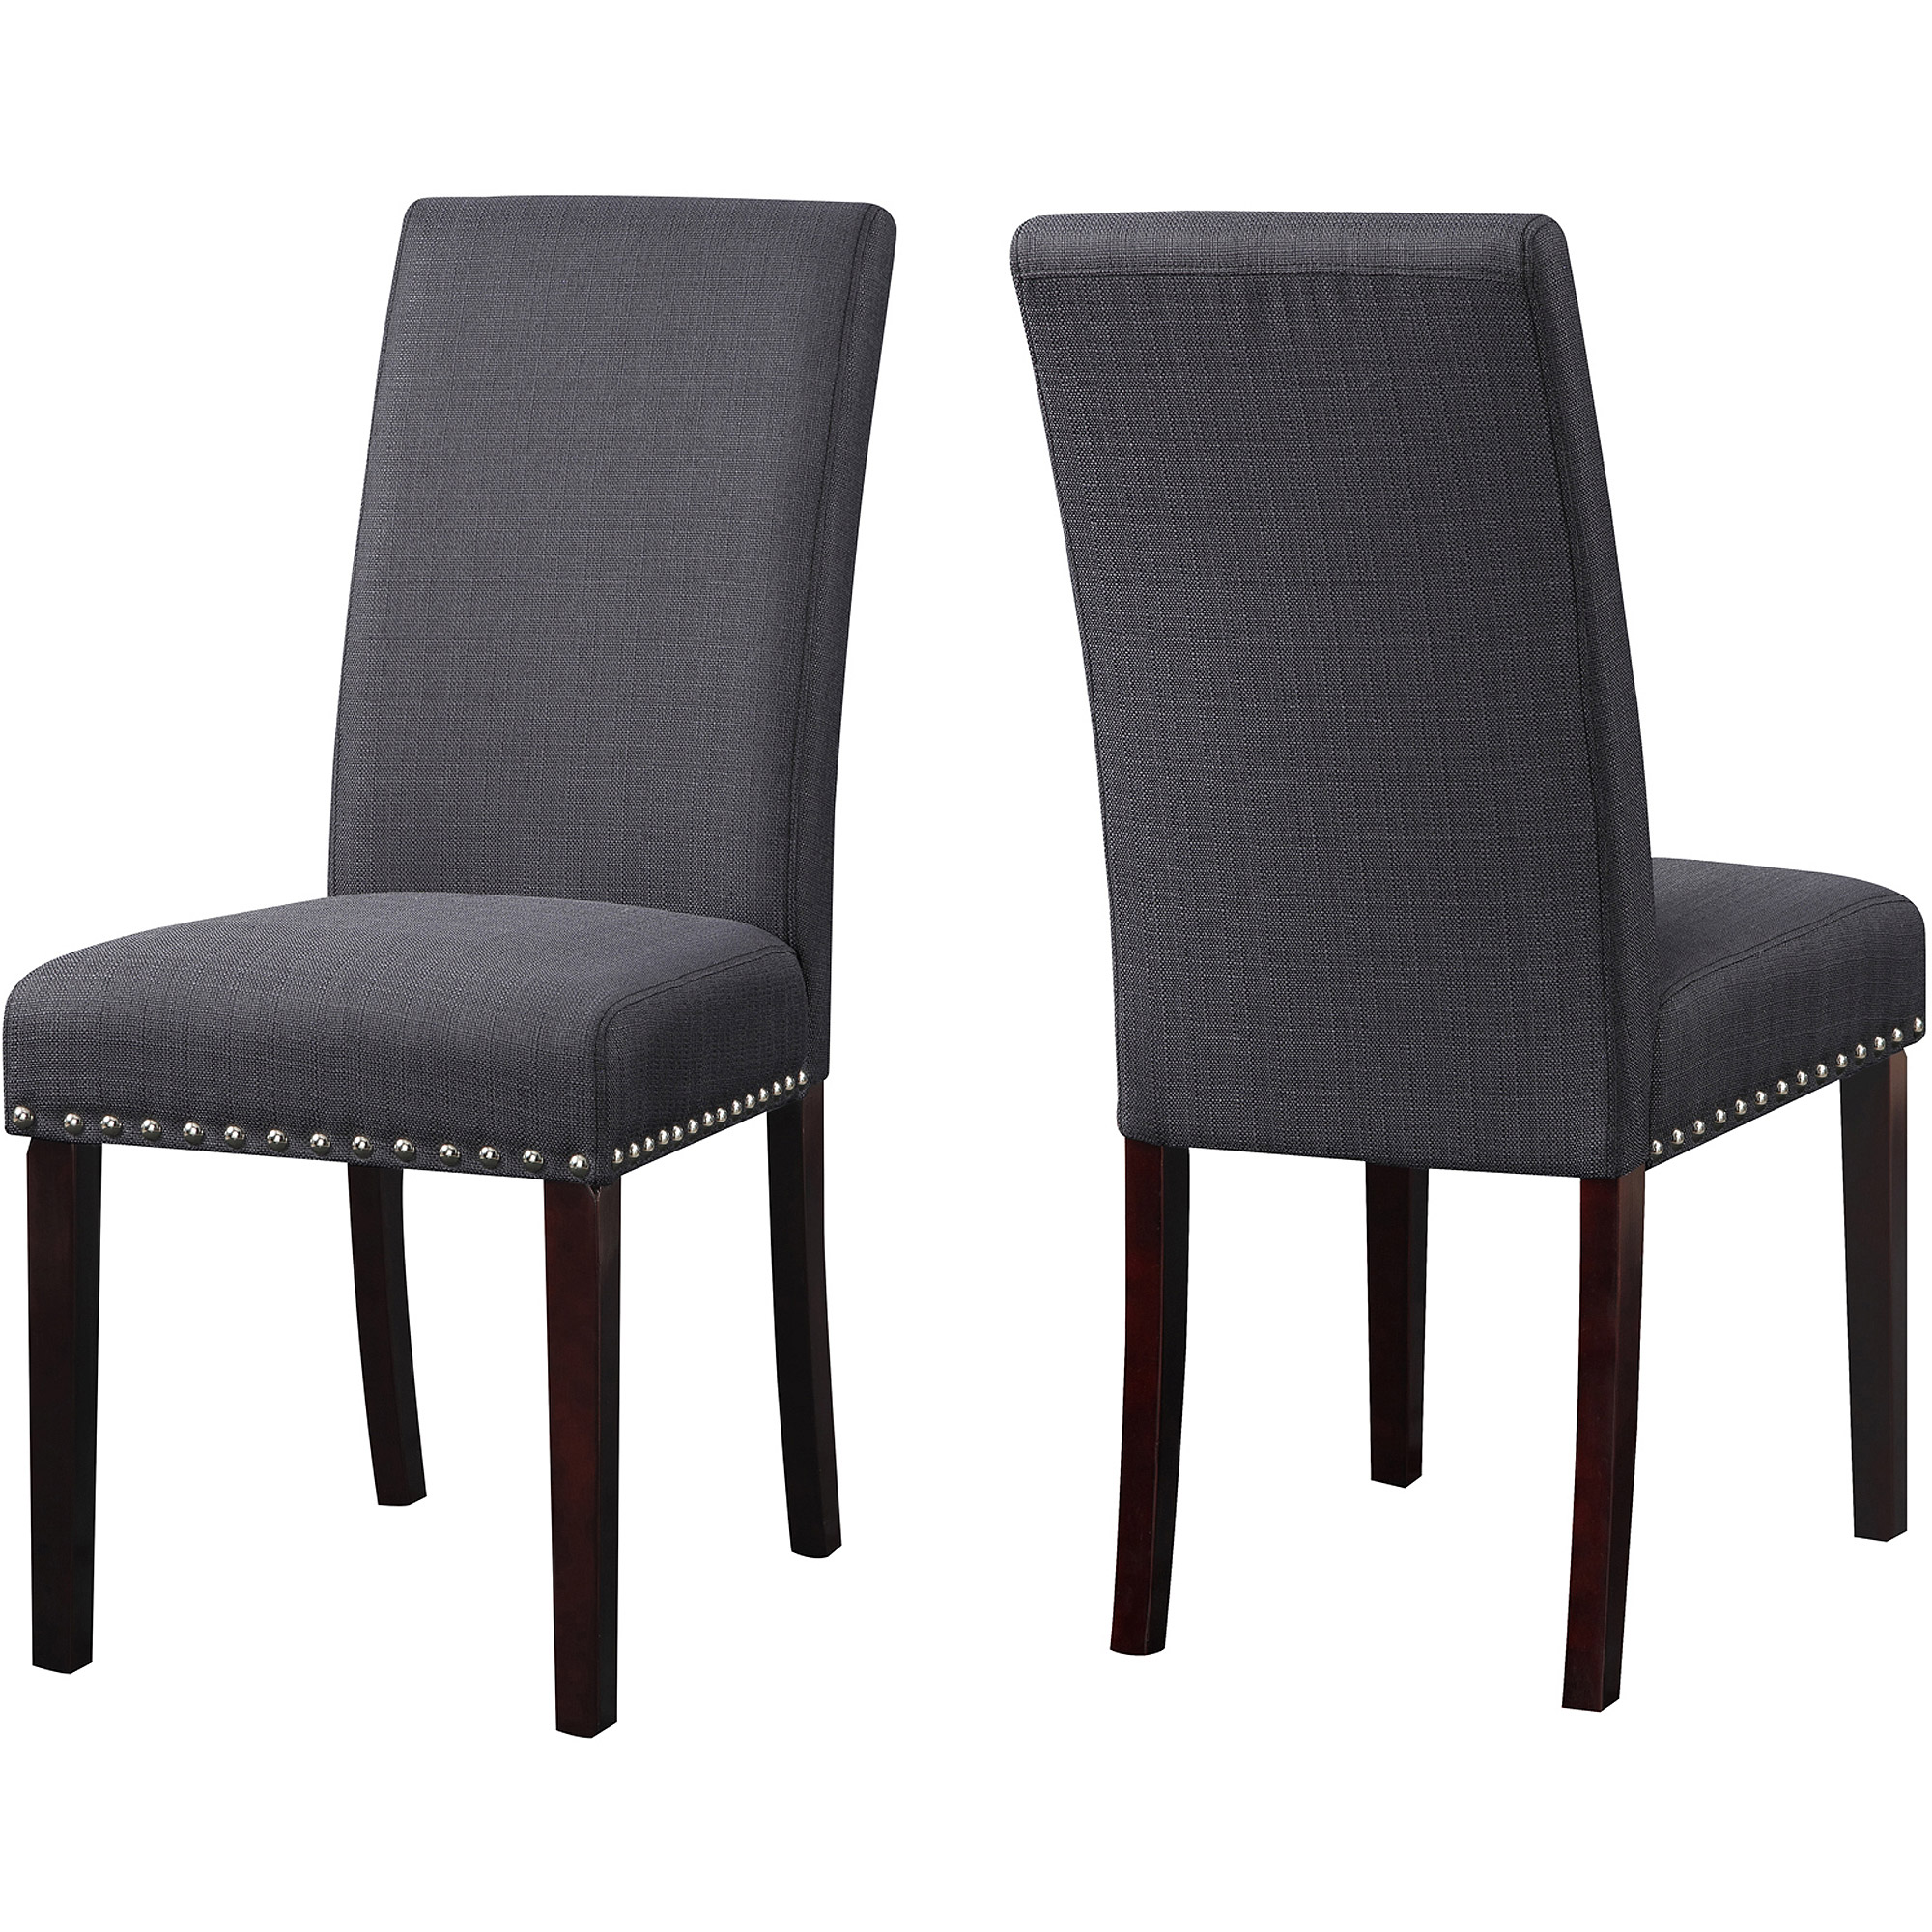 Kitchen Chairs dhi nice nail head upholstered dining chair, 2 pack, multiple colors - YTJMAUS